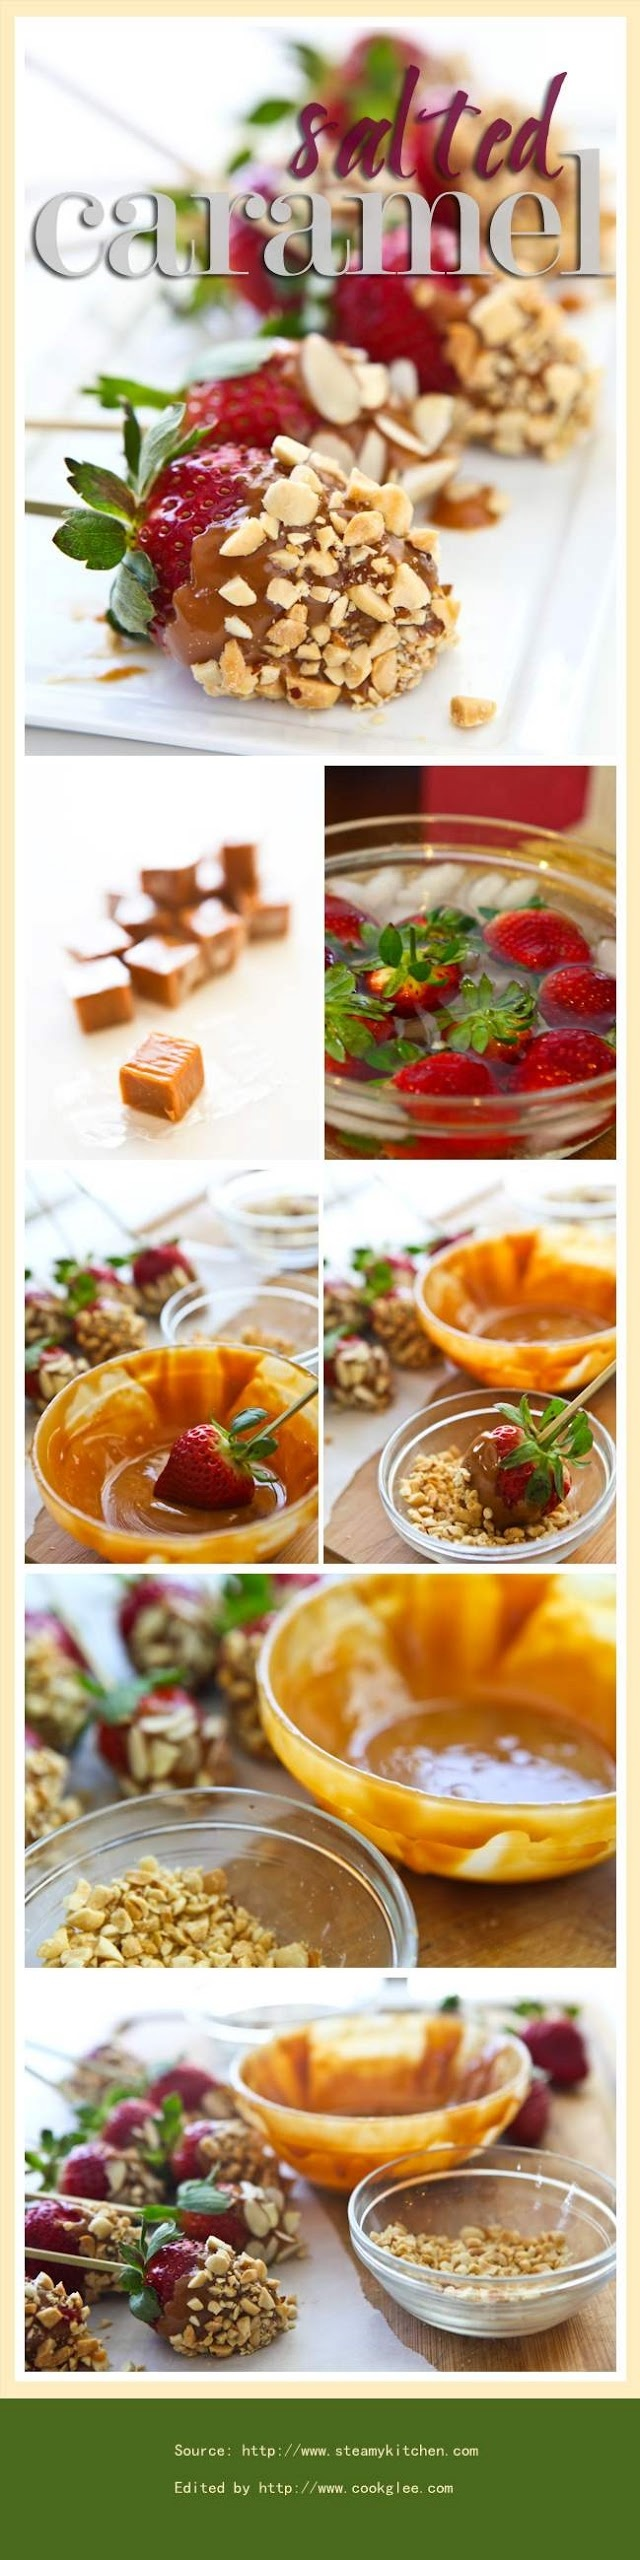 Salted Caramel Covered Strawberries | Appetizers & Finger Food | Pint ...